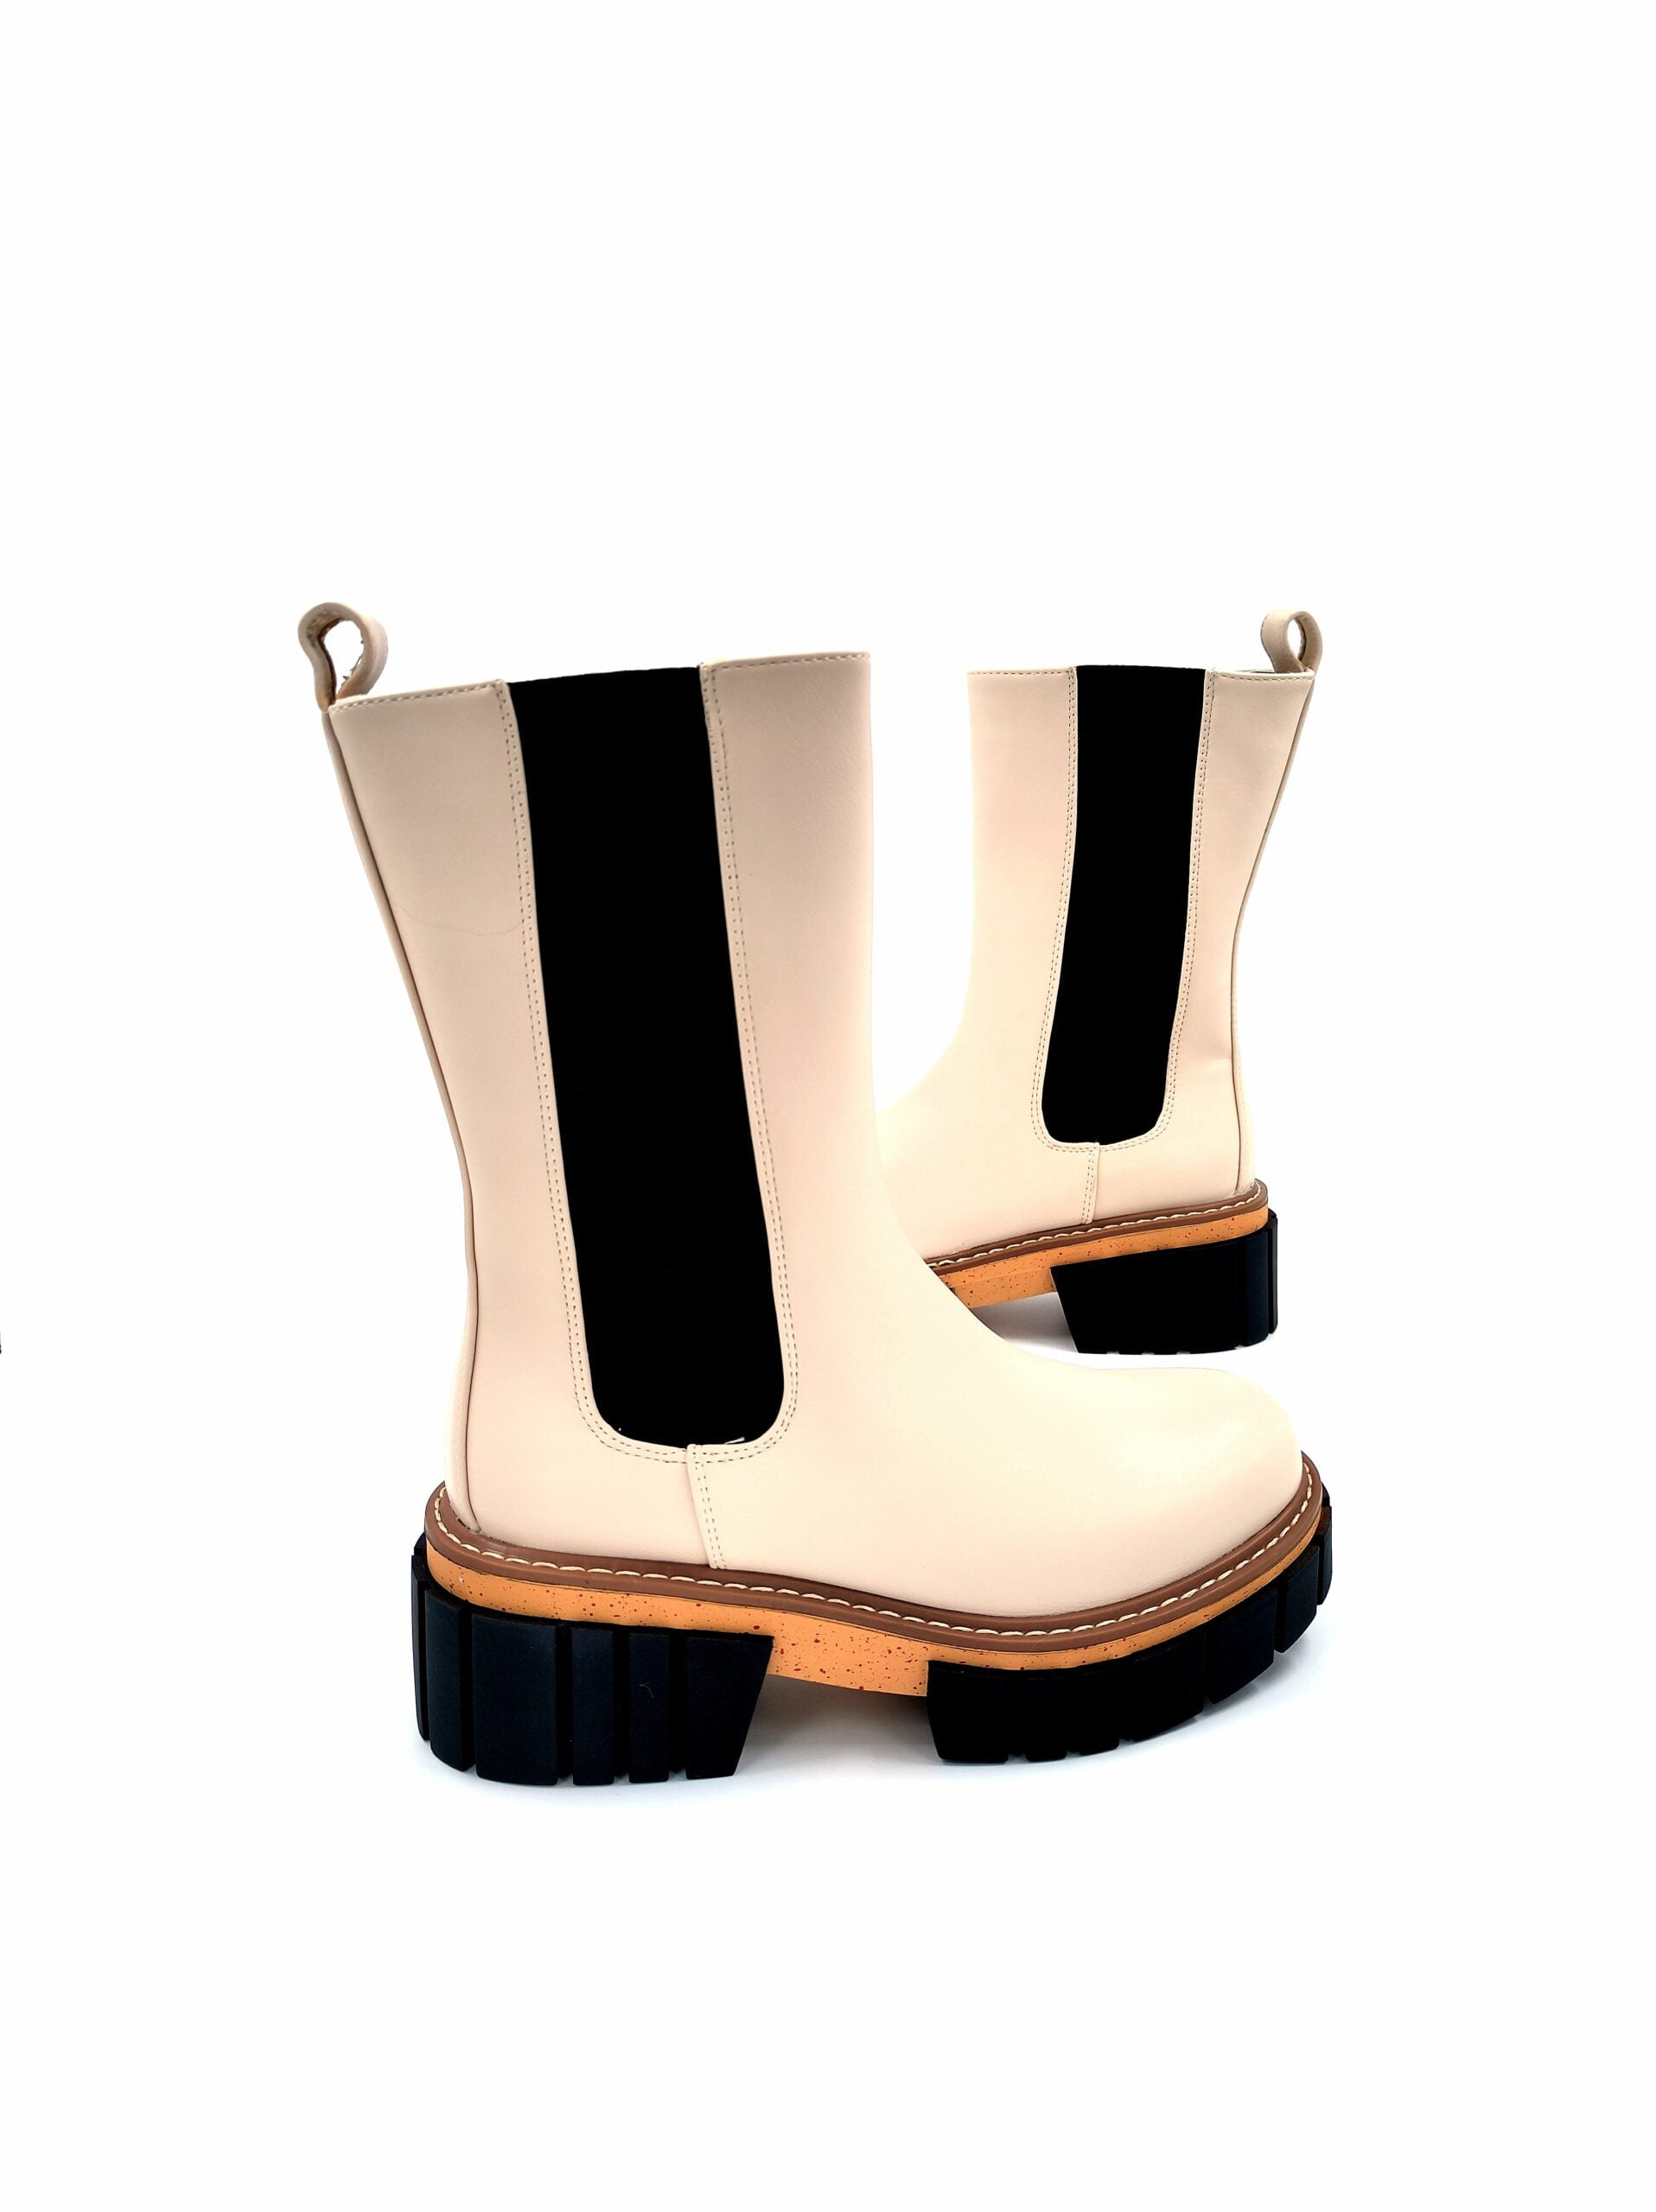 Boots with a two-colored Beige sole